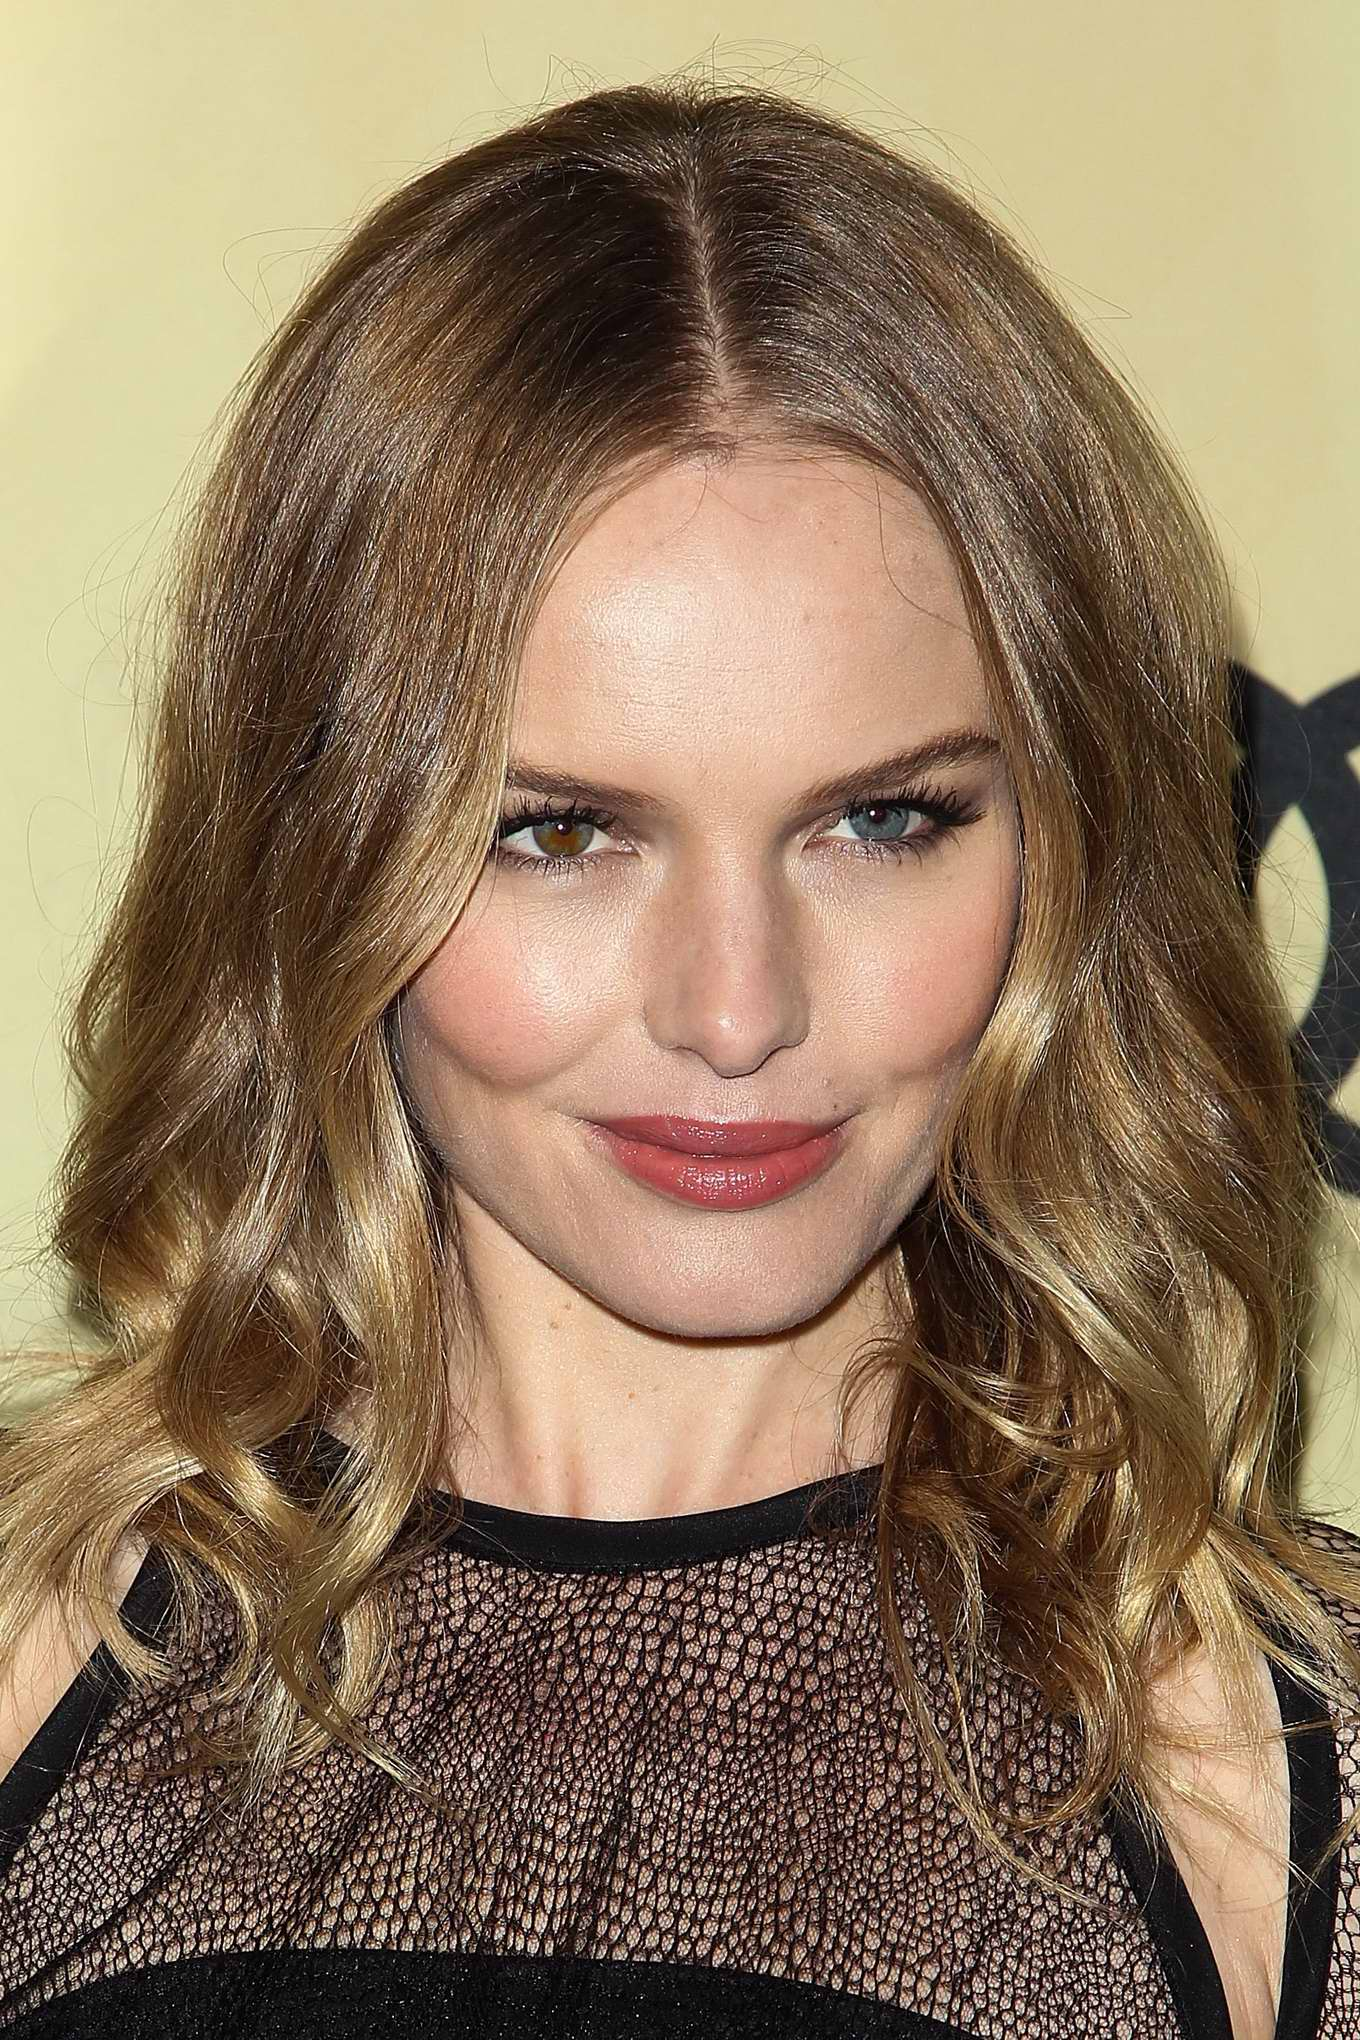 Kate Bosworth Looks Hot Wearing Black Partially See